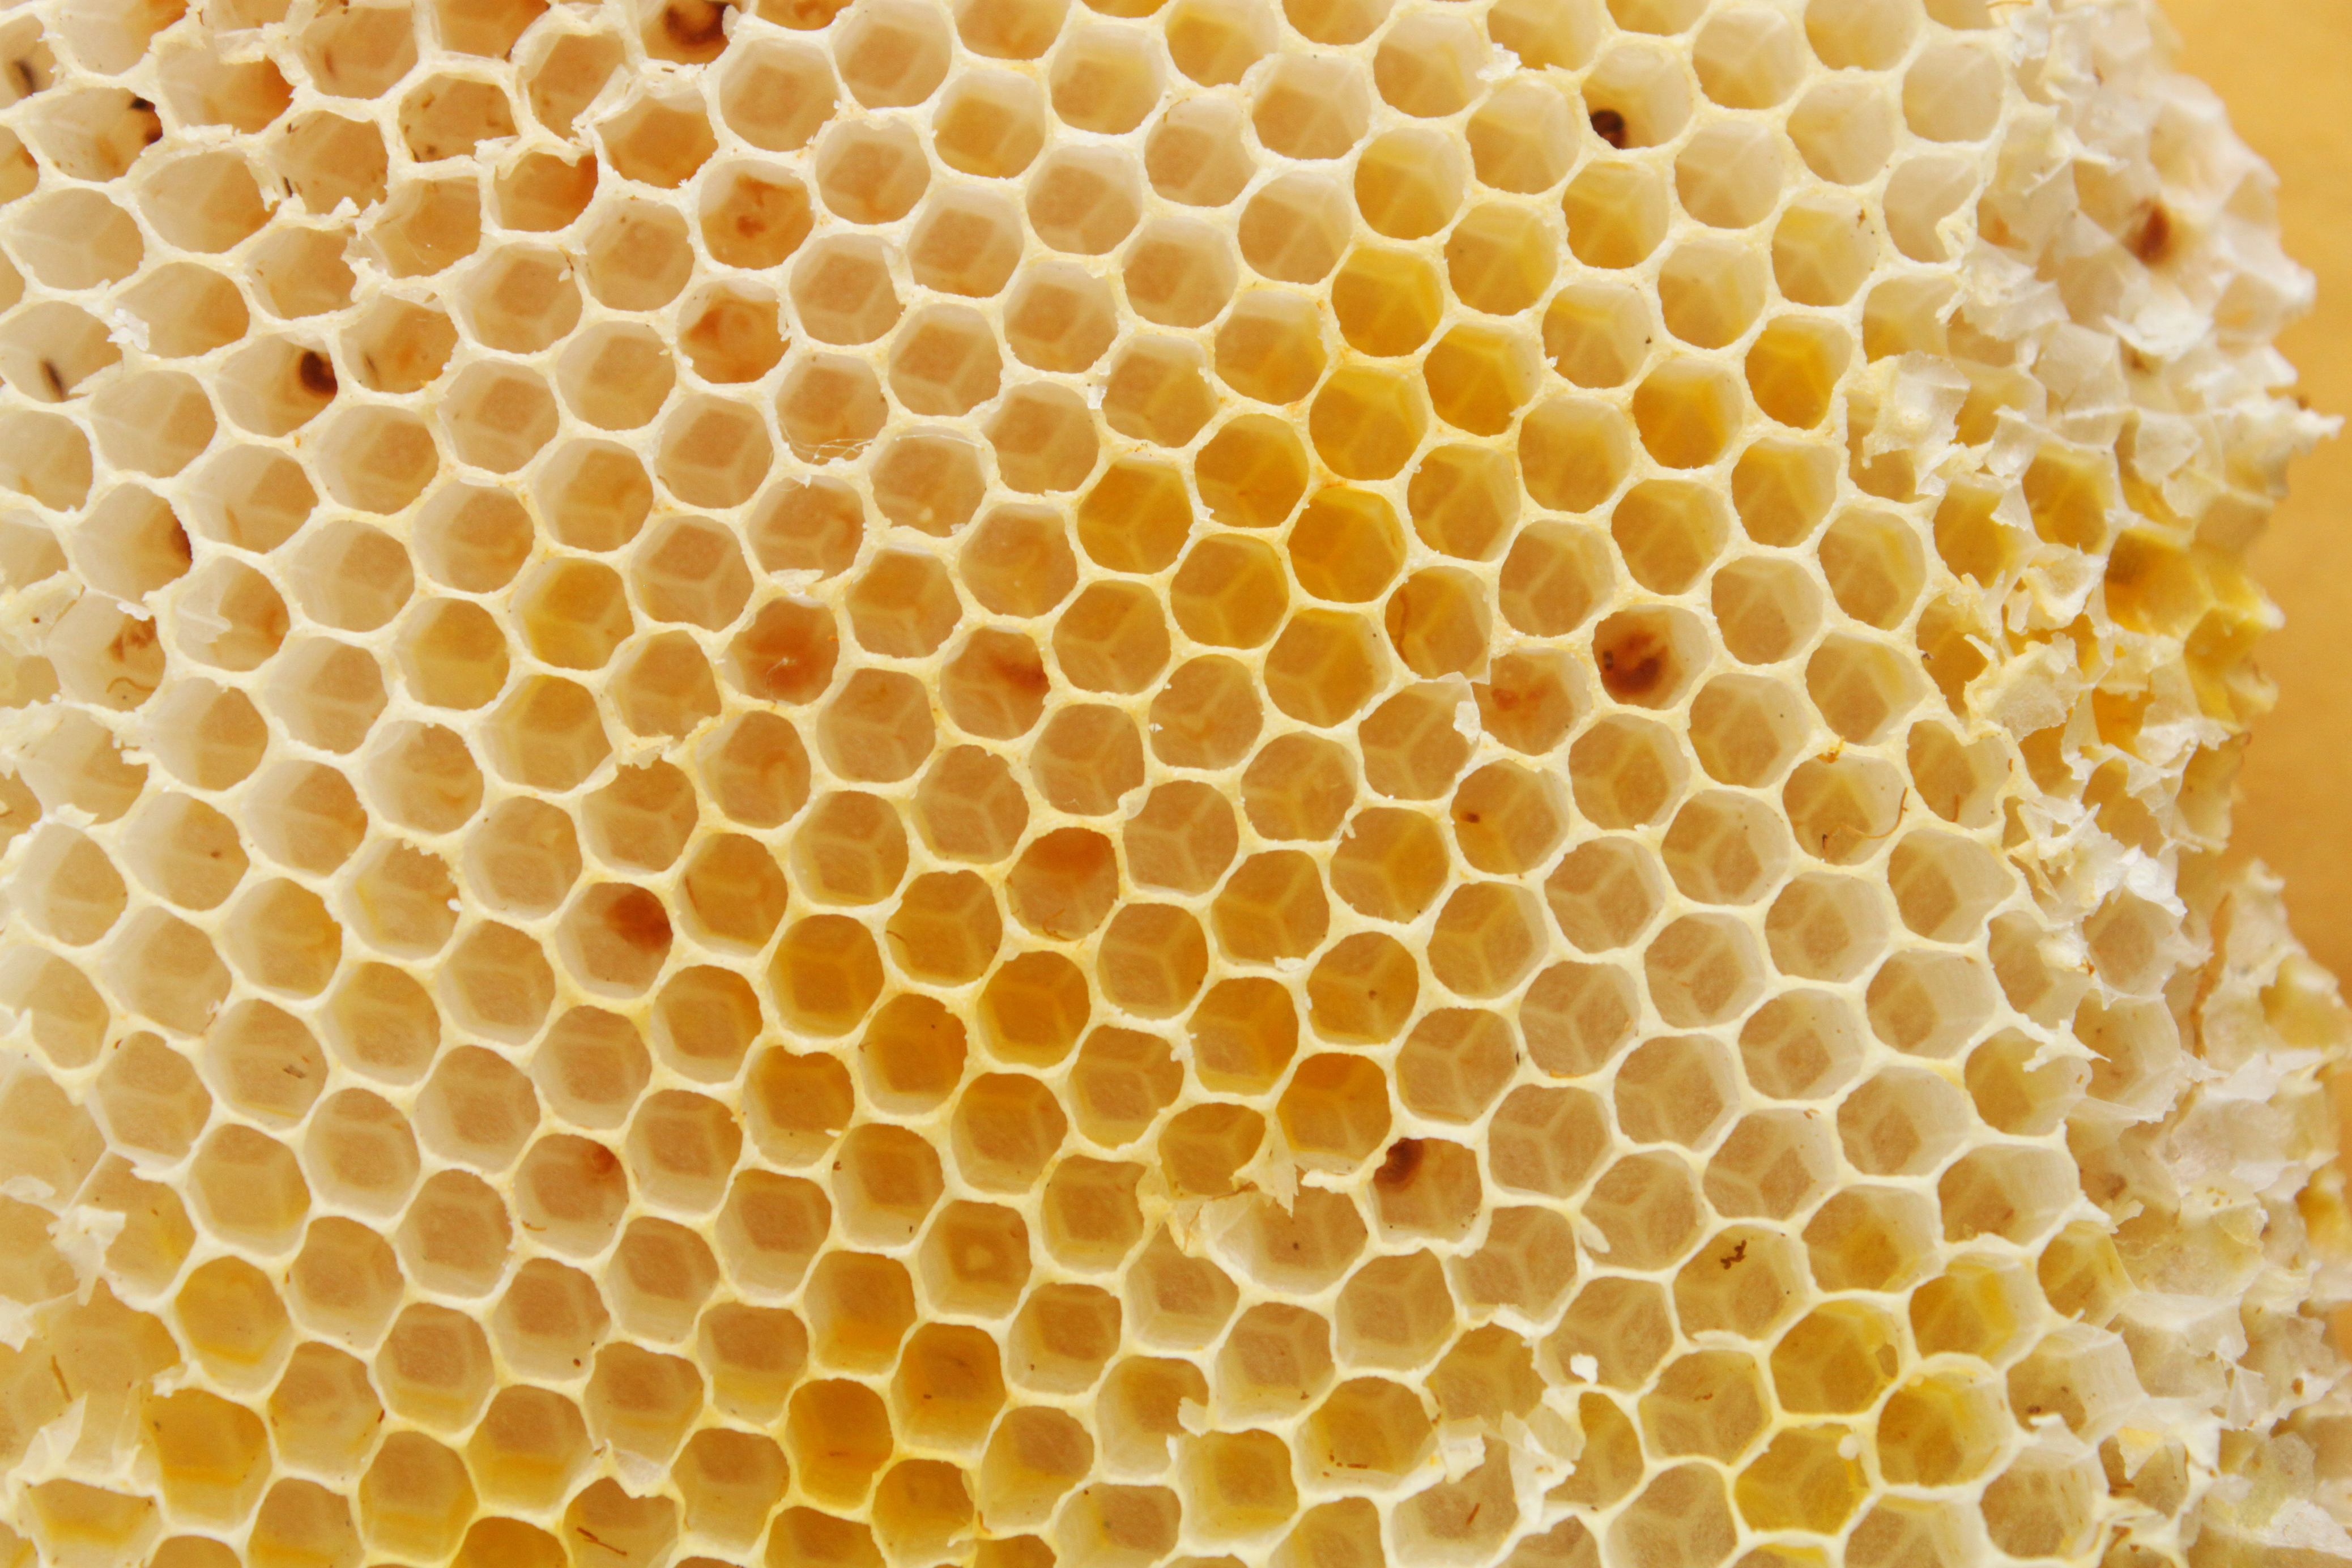 Beehive texture, Abstract, Sugar, Pollen, Polygon, HQ Photo